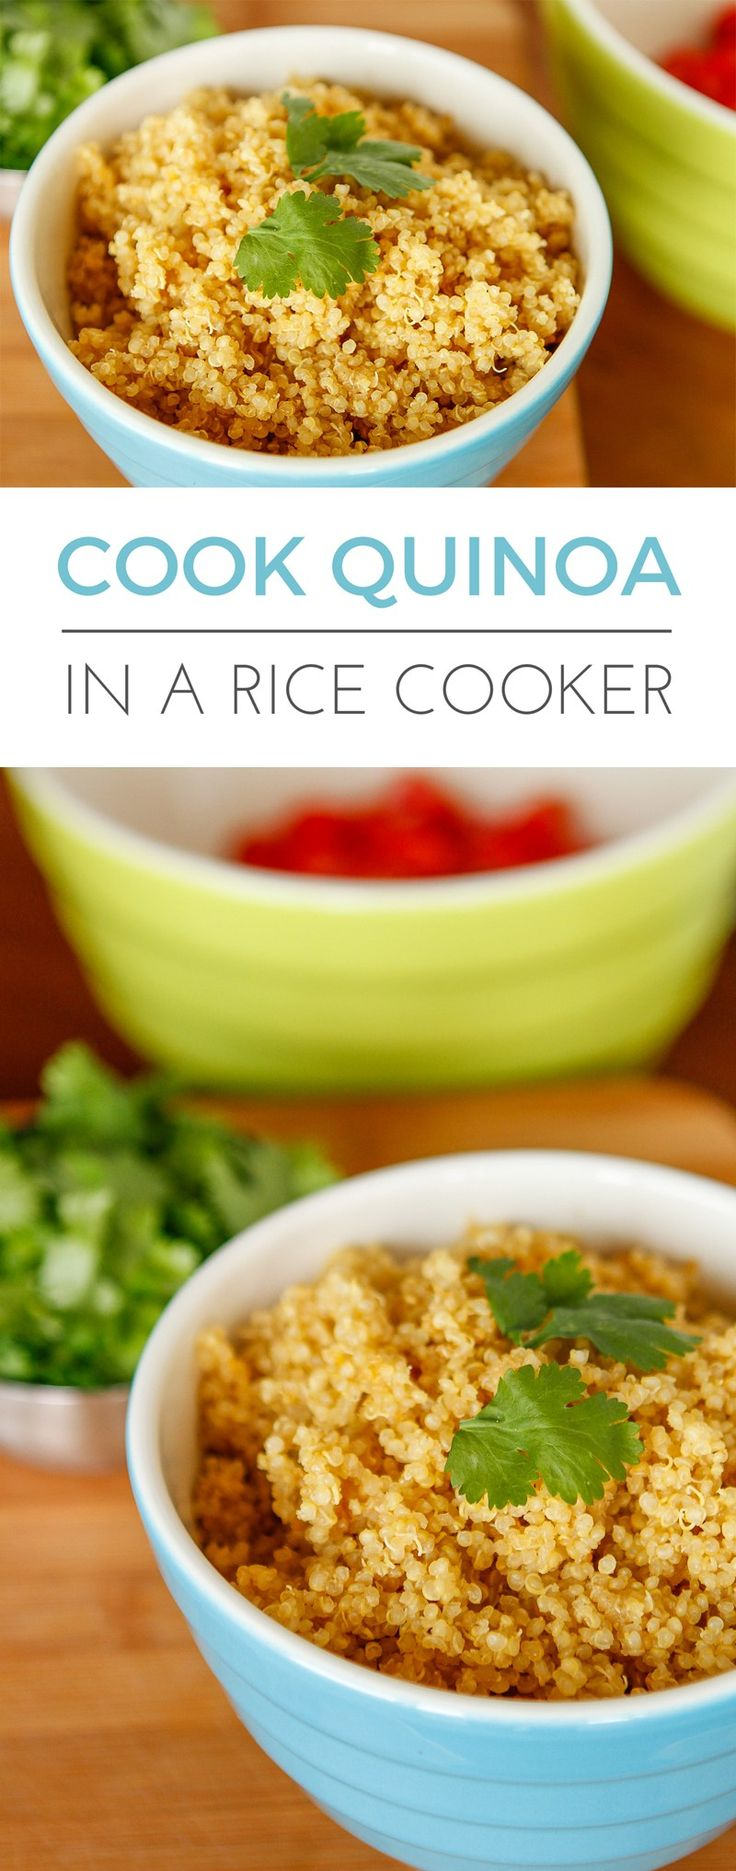 25+ Best Ideas About Quinoa In Rice Cooker On Pinterest  Cooking Wild Rice,  Slow Cooker Soup And Easy Pheasant Recipes